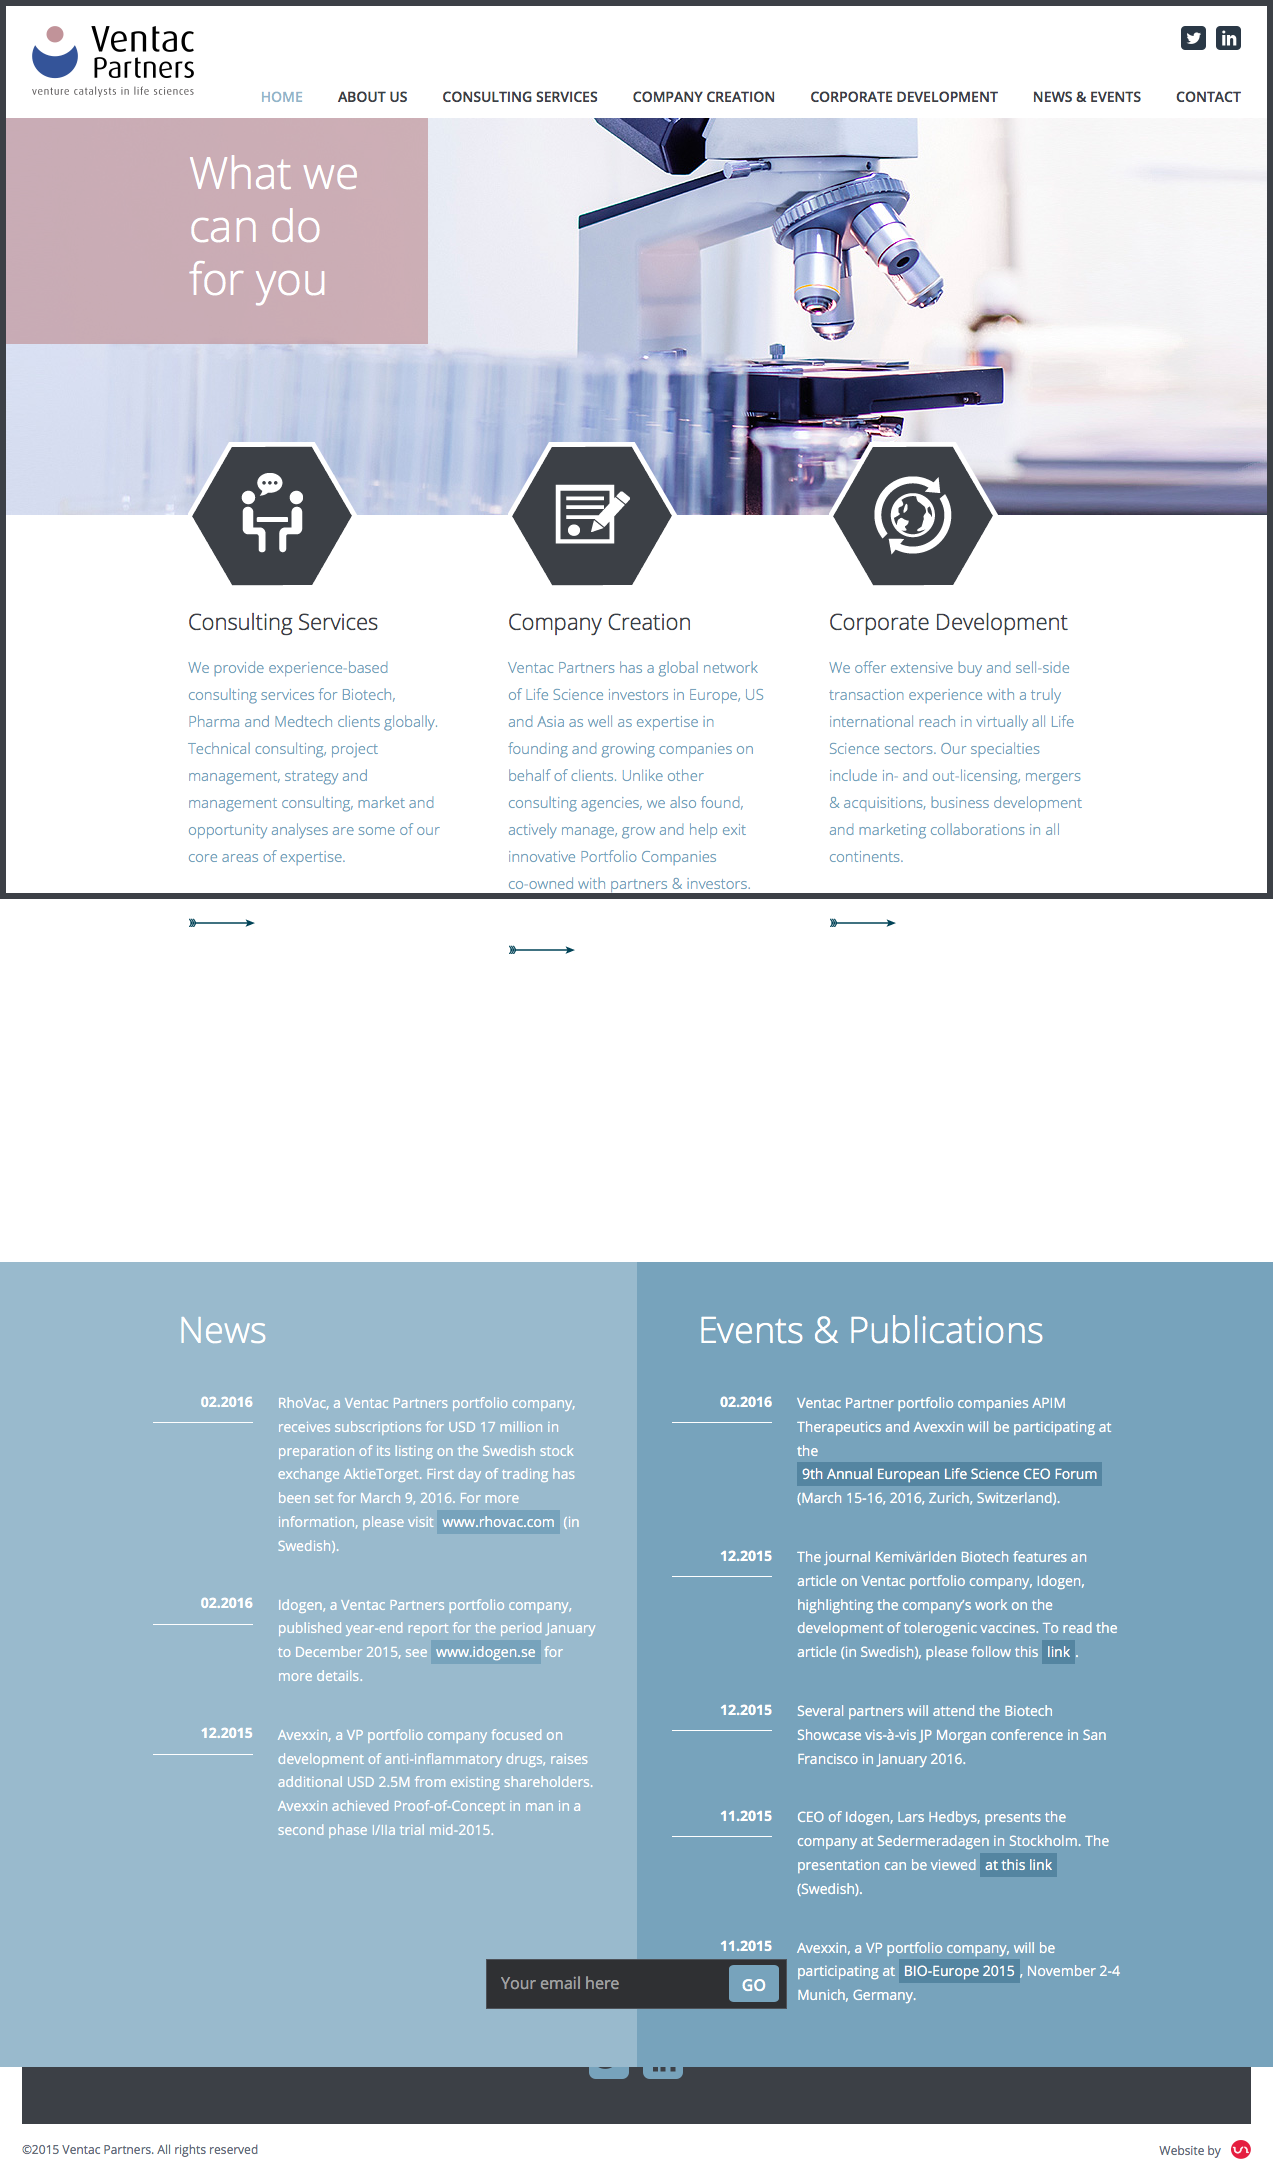 Ventac Partners Website By Youandi Graphics March For Science Web Design Development